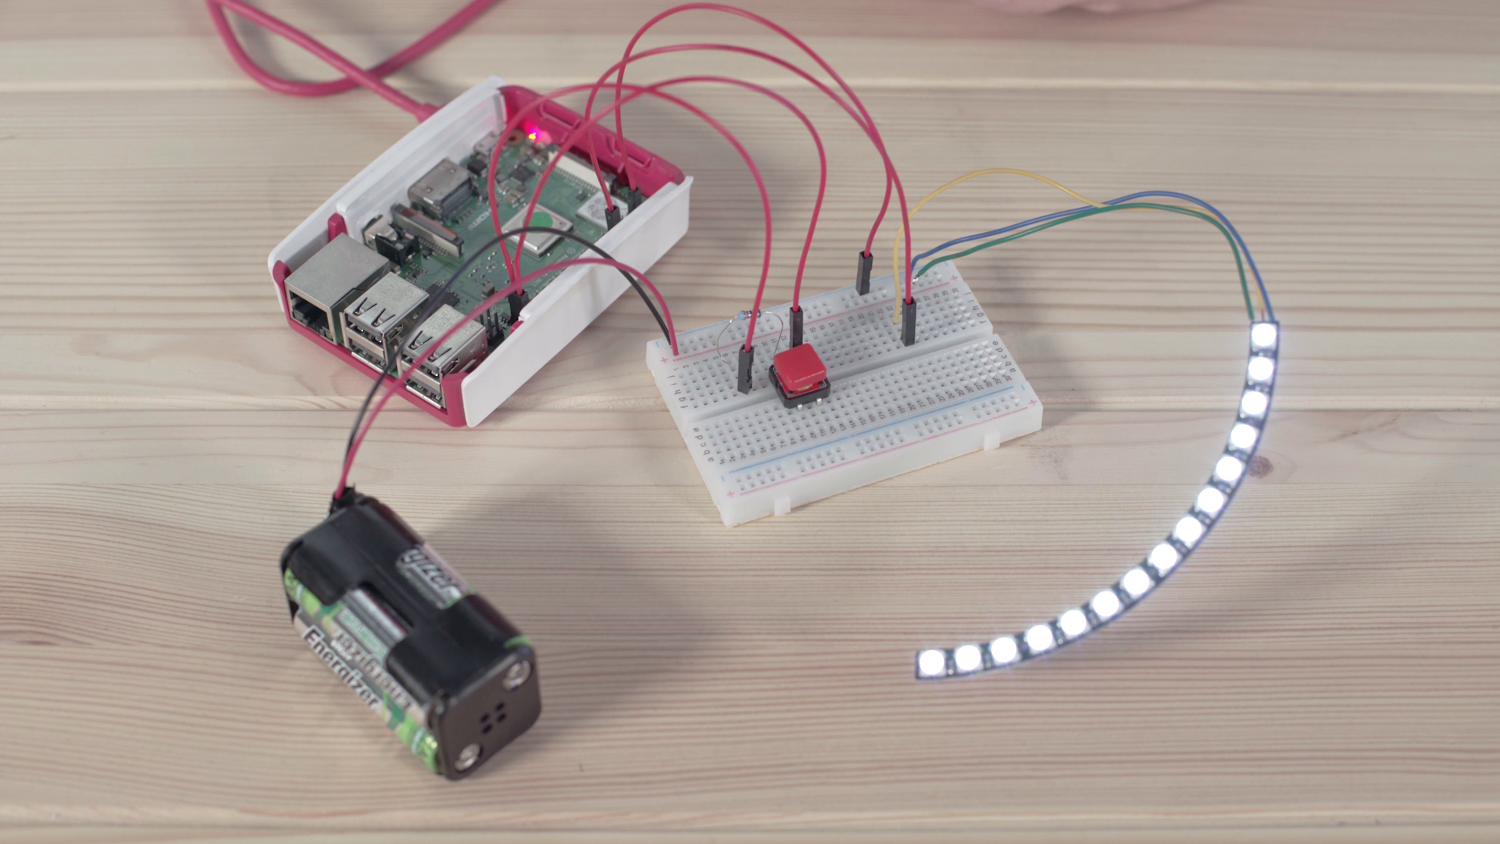 Use NeoPixels with Raspberry Pi and Python - The MagPi